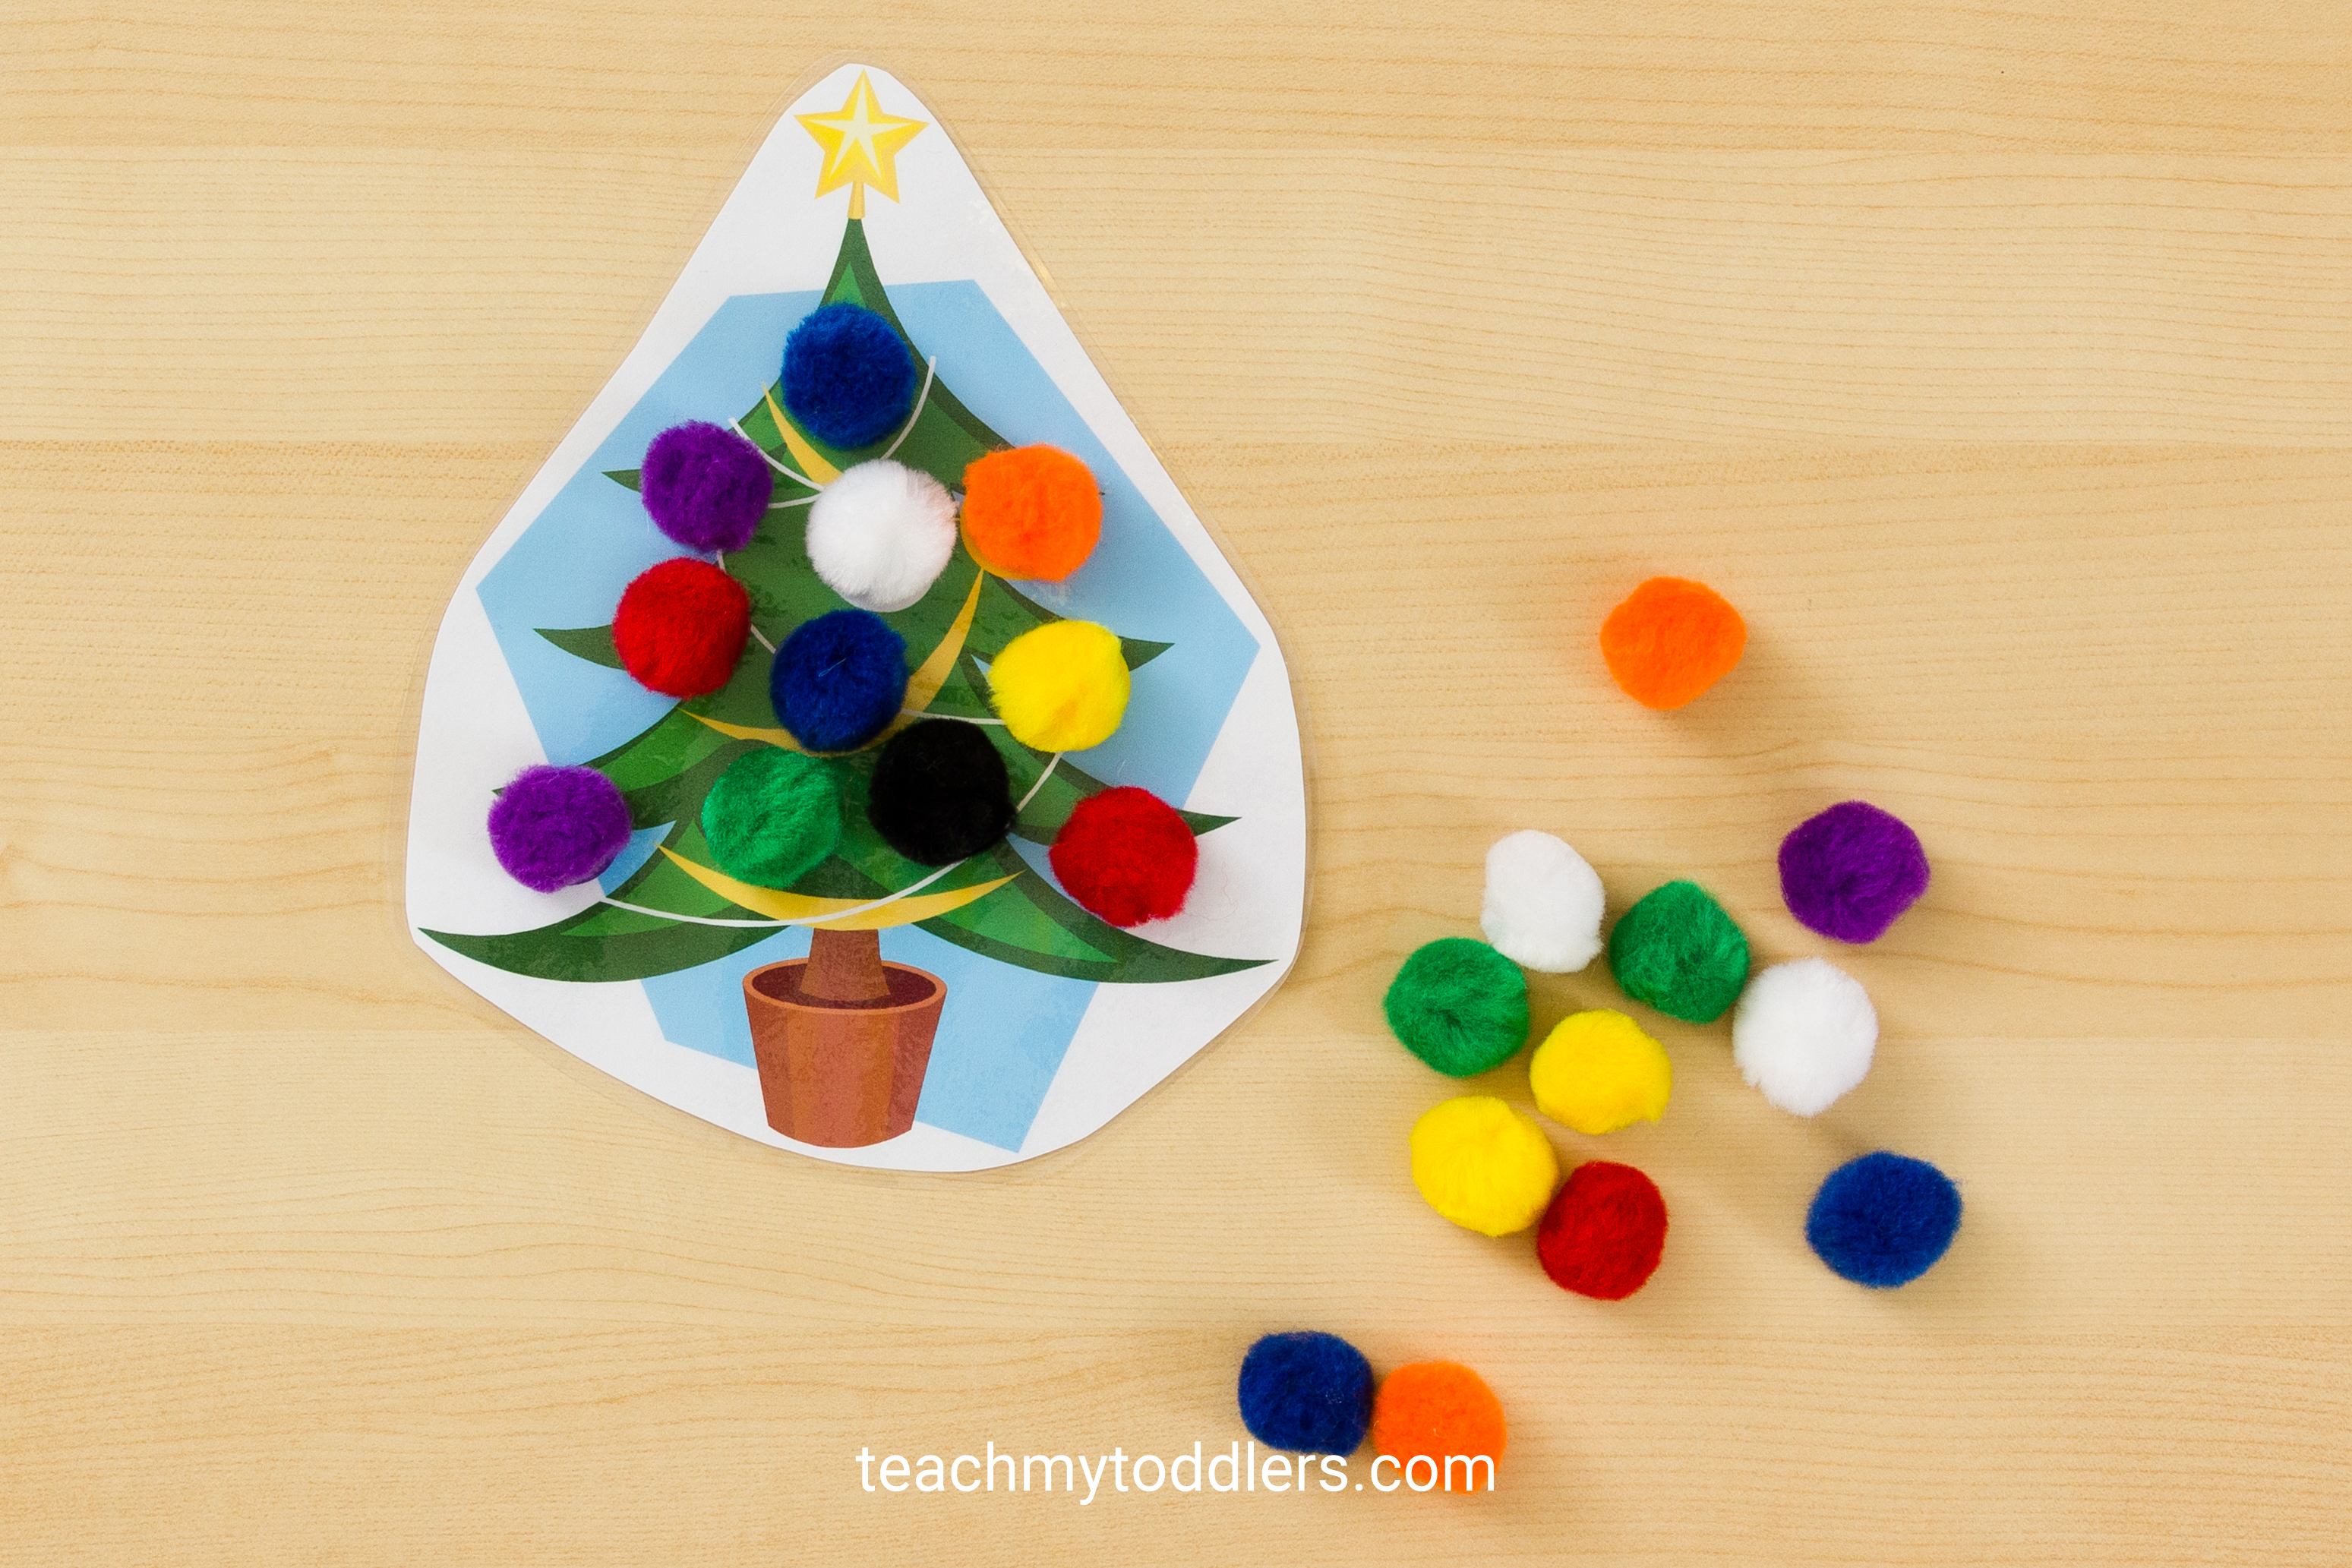 Find out how to use these christmas tree activities to teach your toddlers letters and colors